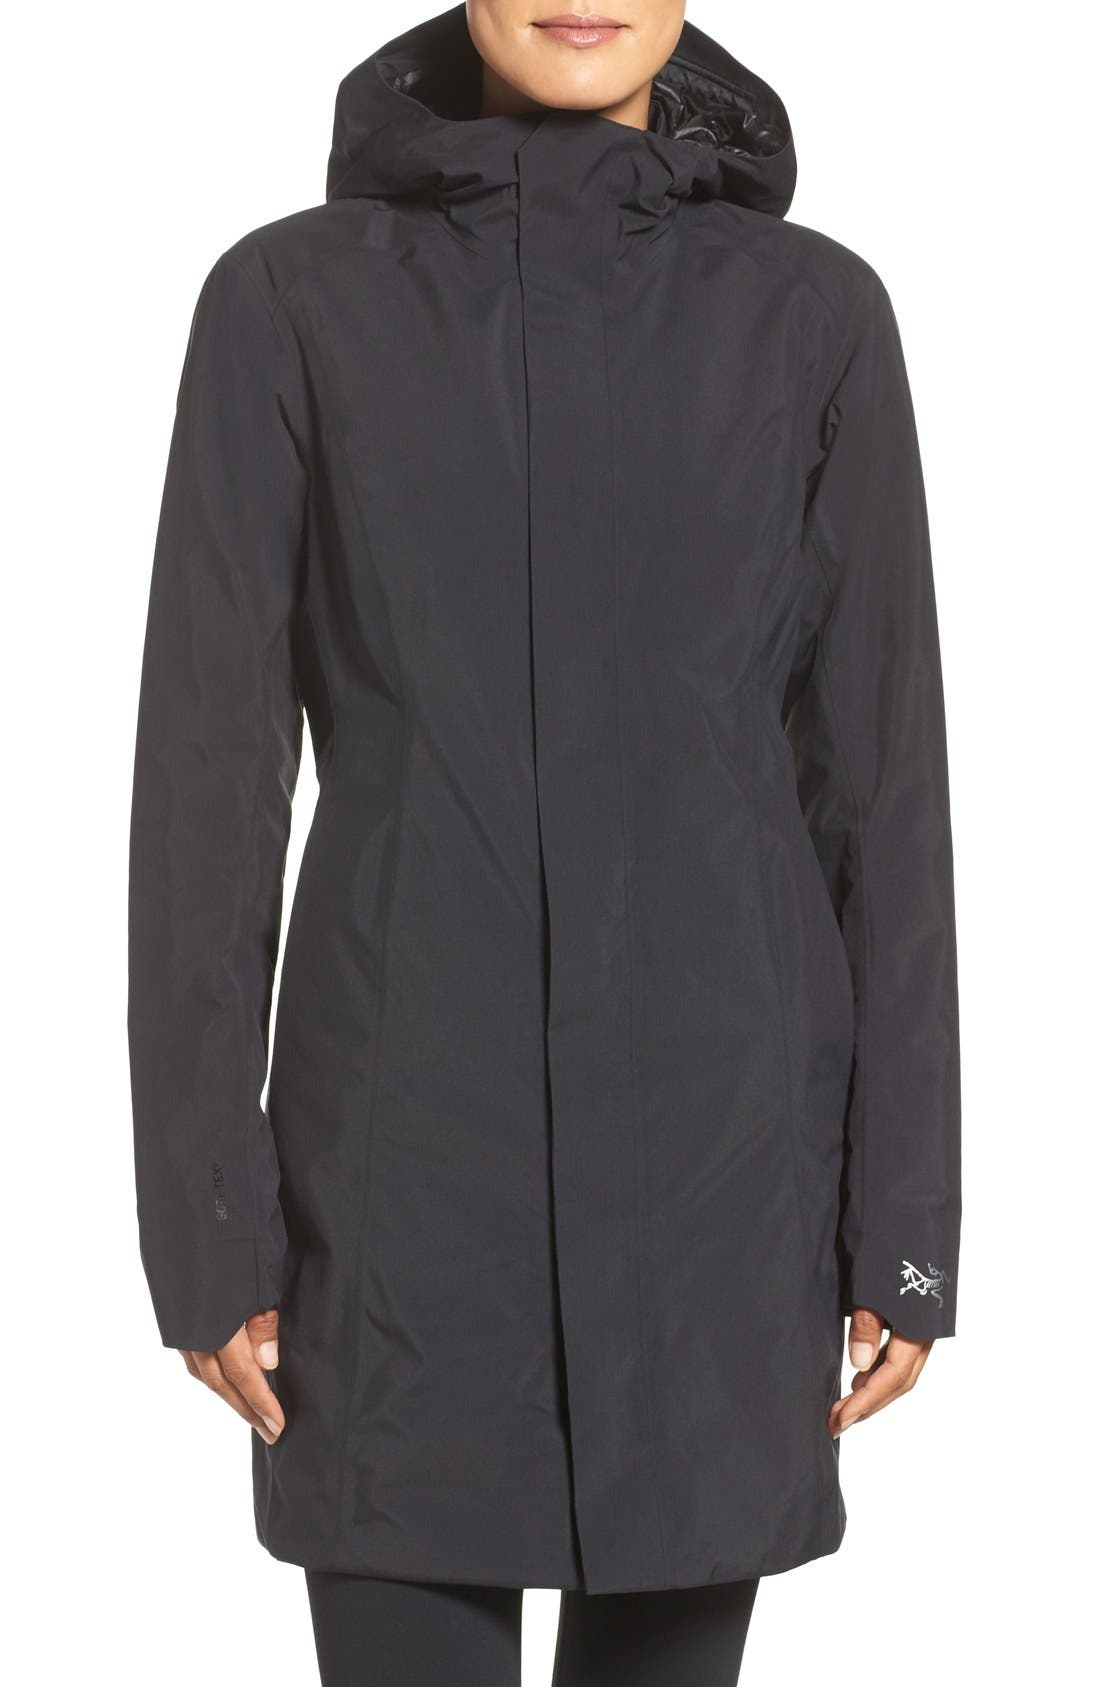 Main Image - Arc'teryx Durant Waterproof Hooded Jacket